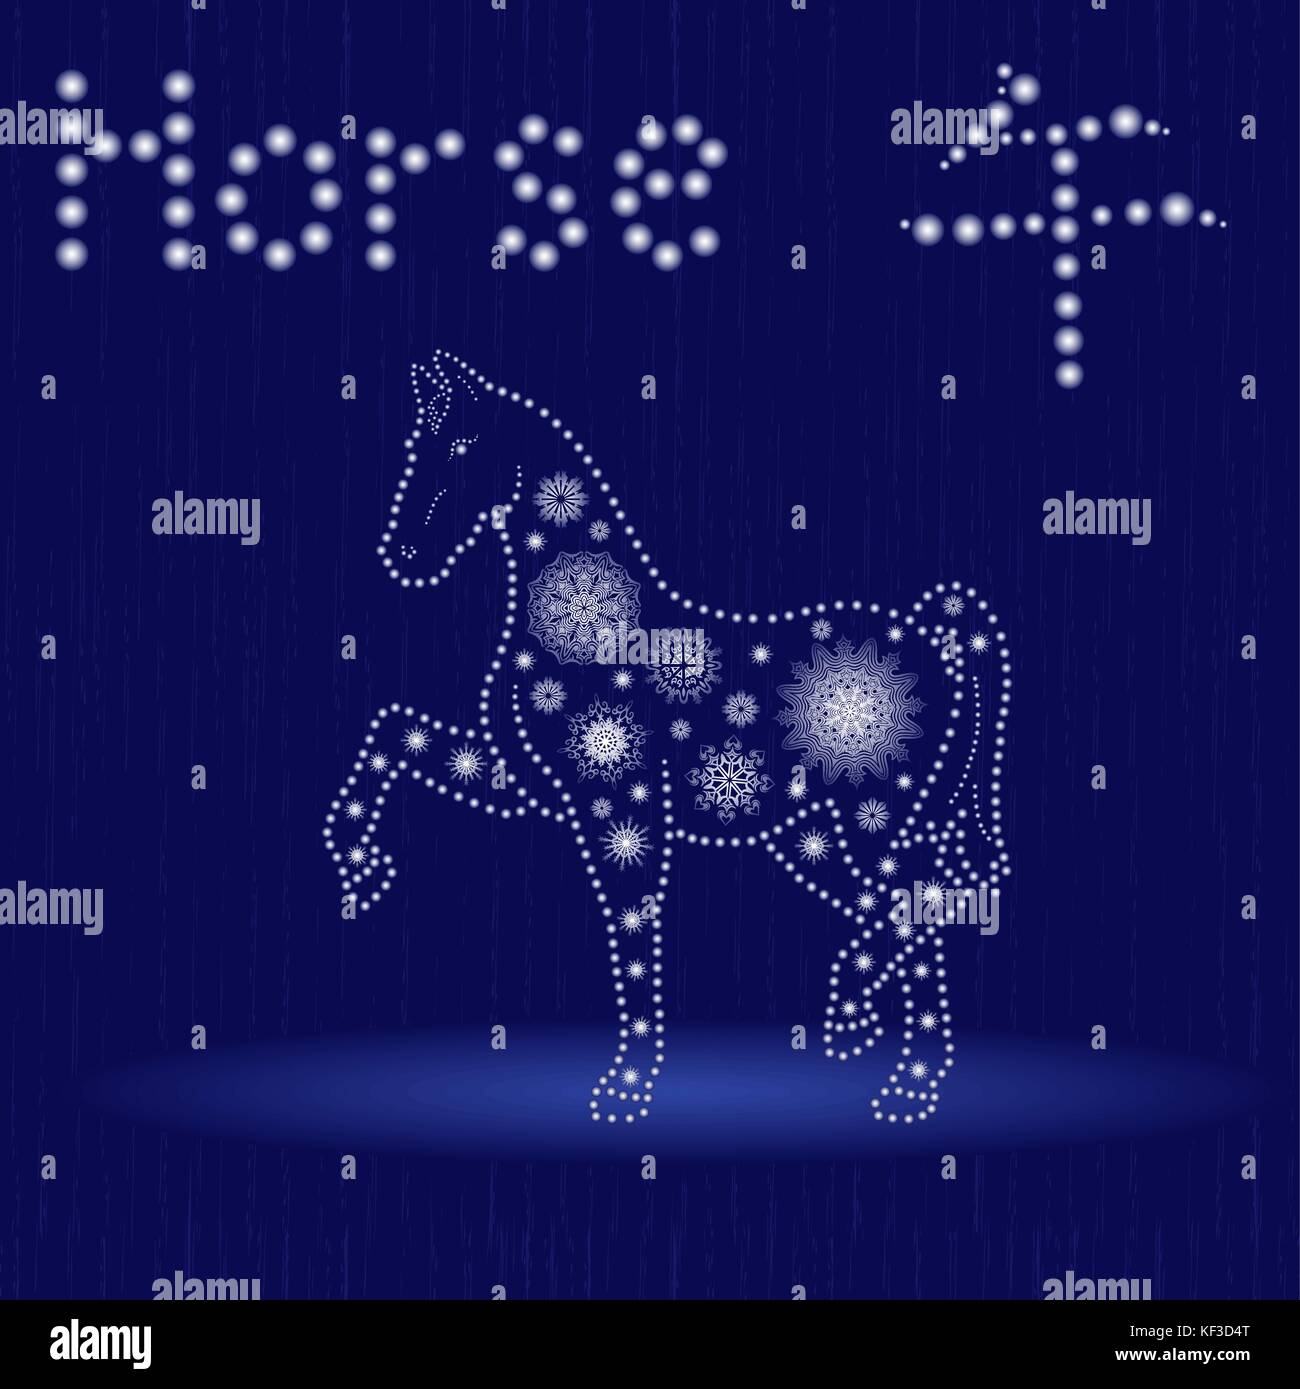 Chinese zodiac sign horse fixed element fire symbol of new year chinese zodiac sign horse fixed element fire symbol of new year on the eastern calendar hand drawn vector illustration with snowflakes and light sp buycottarizona Images